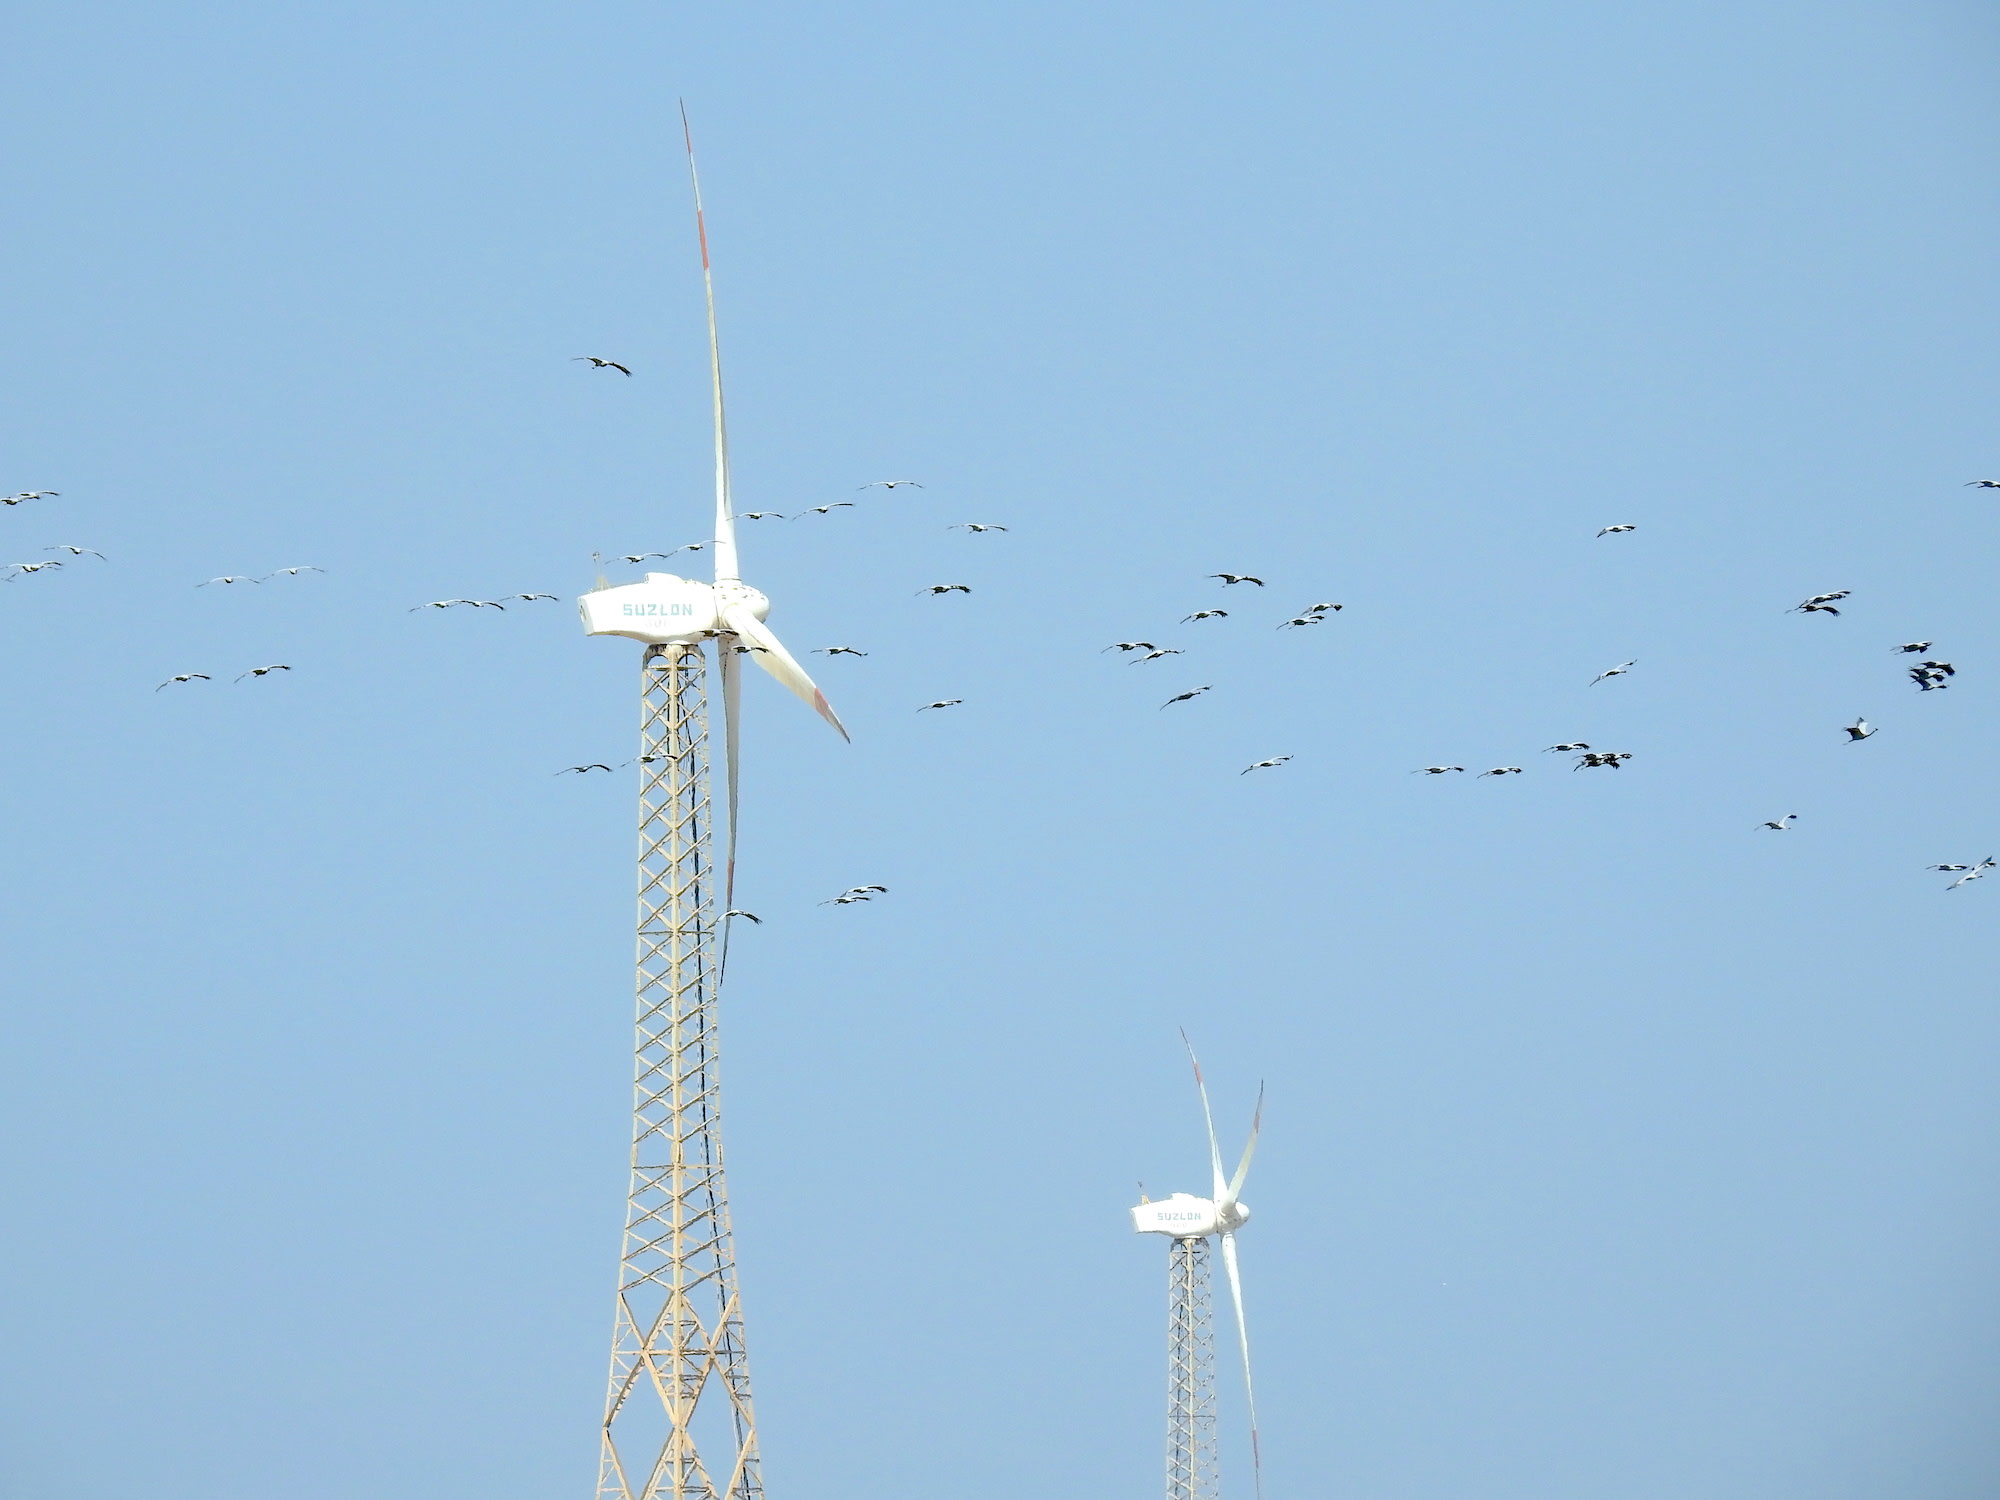 Large windmills or turbines can pose a danger to demoiselle cranes that fly close to them. Photo: Dr. Raju Kasambe/CC BY-SA 4.0  The  sleepy  village  of  Kheechan  comes  alive  every  year  with  the  arrival  of  the demoiselle cranes. Pictured above is a demoiselle crane feeding centre in the village. Video: Surya Ramachandran